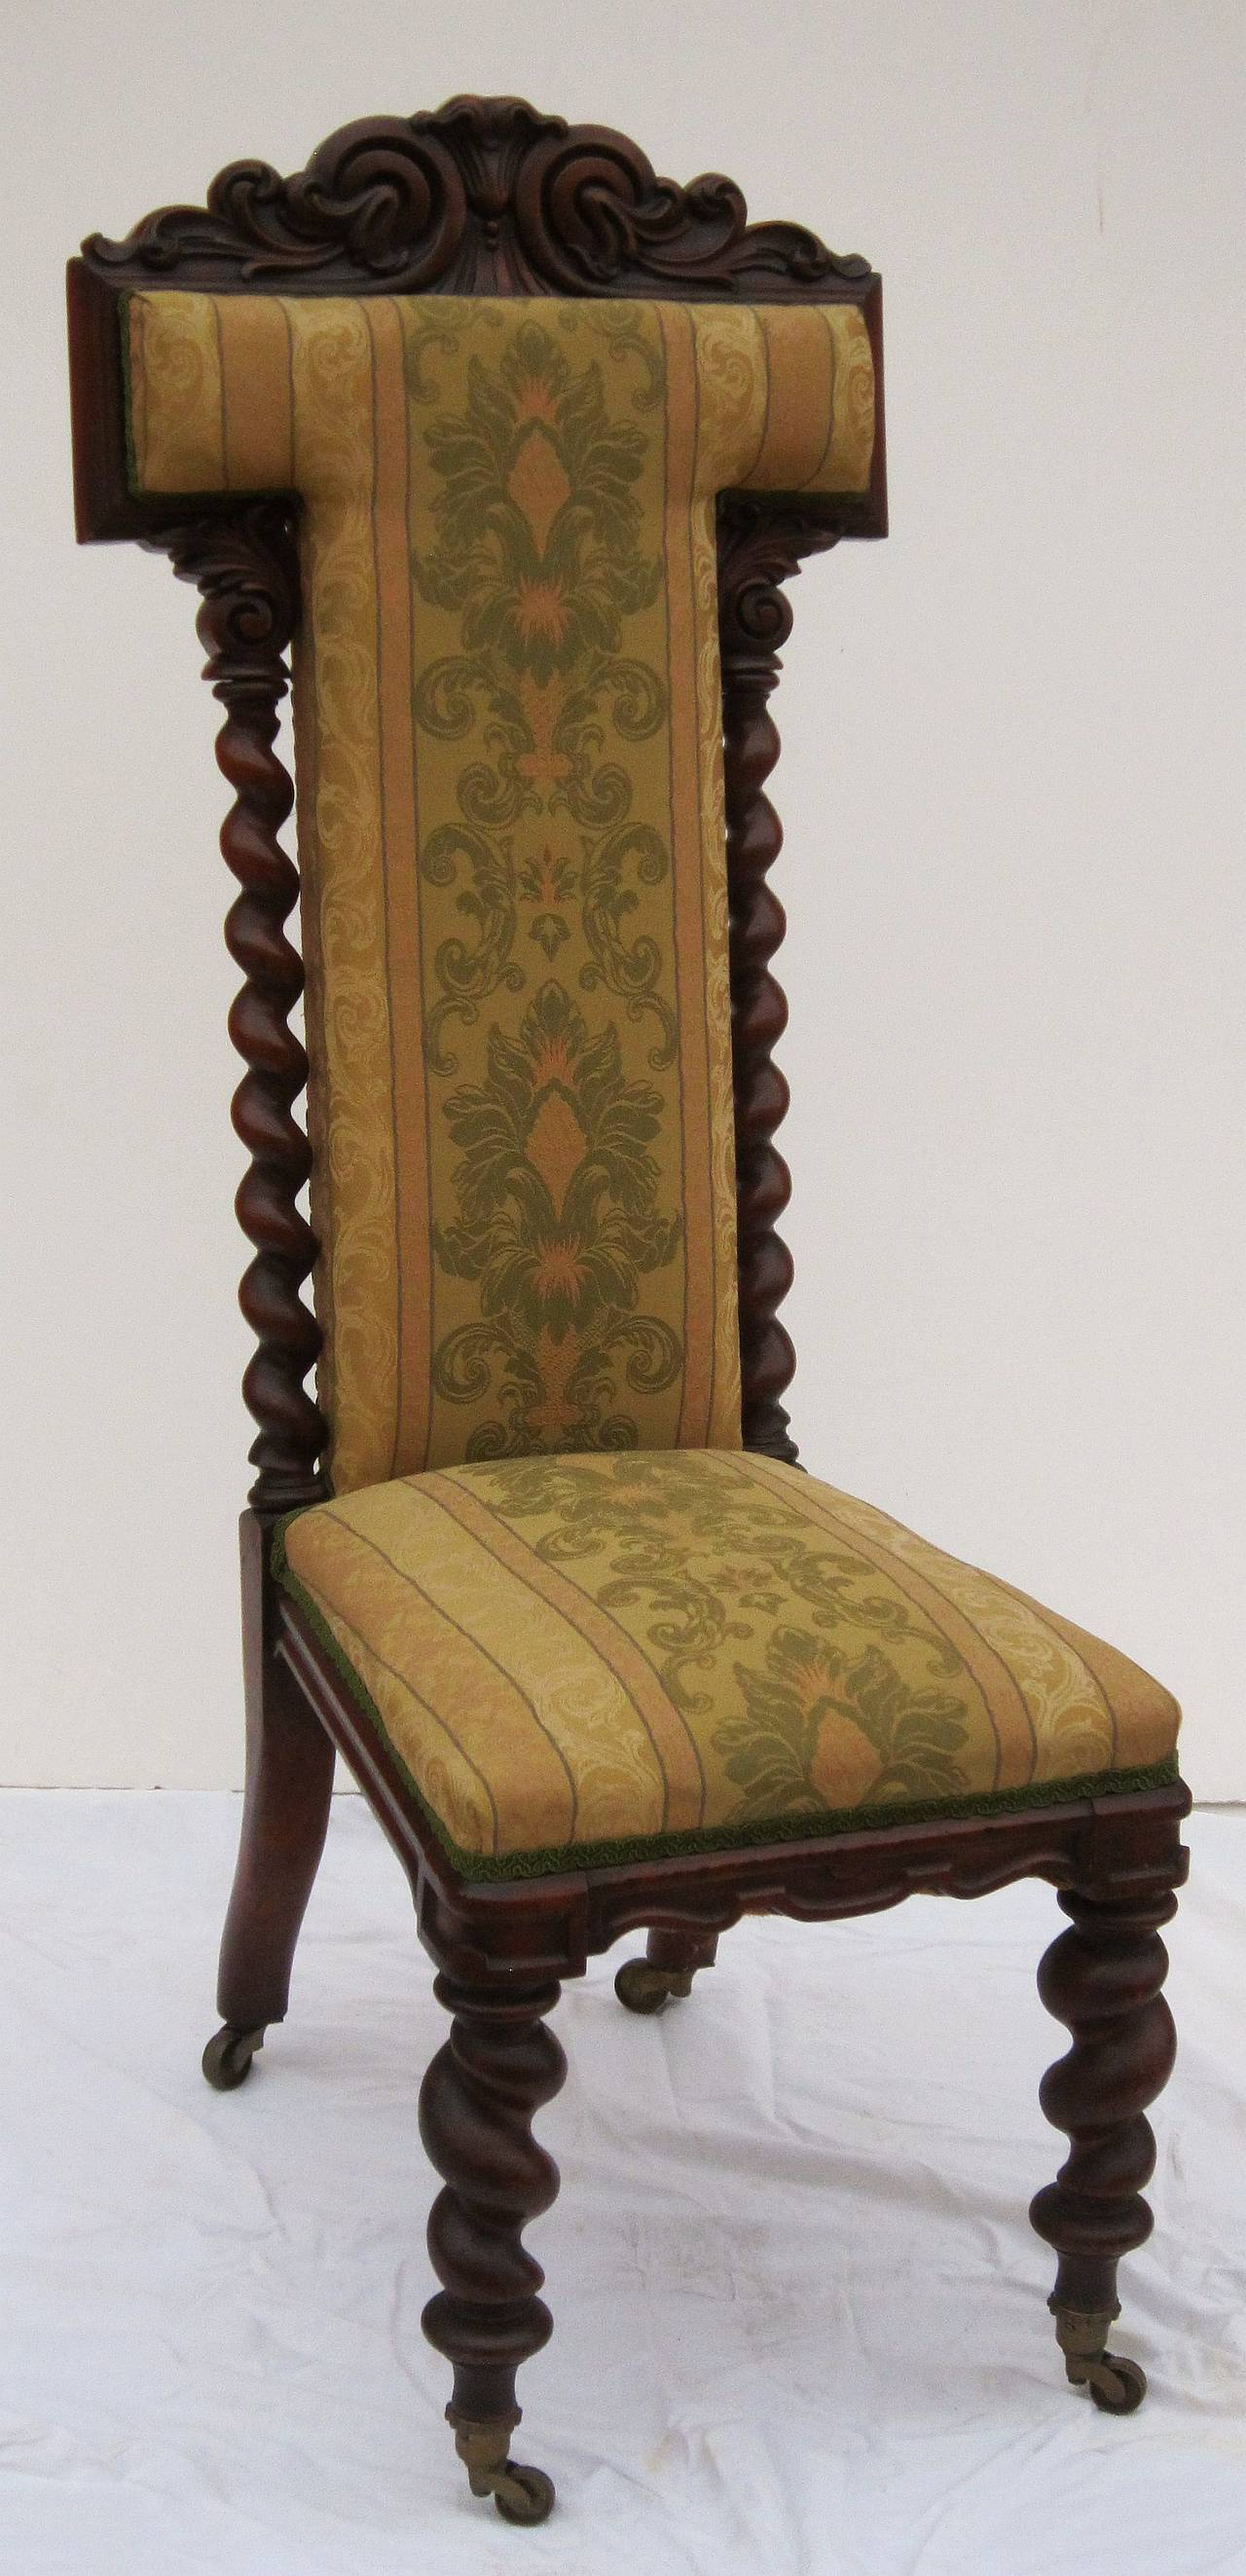 English Prayer Chair of Carved Walnut In Excellent Condition For Sale In  Austin, TX - English Prayer Chair Of Carved Walnut For Sale At 1stdibs